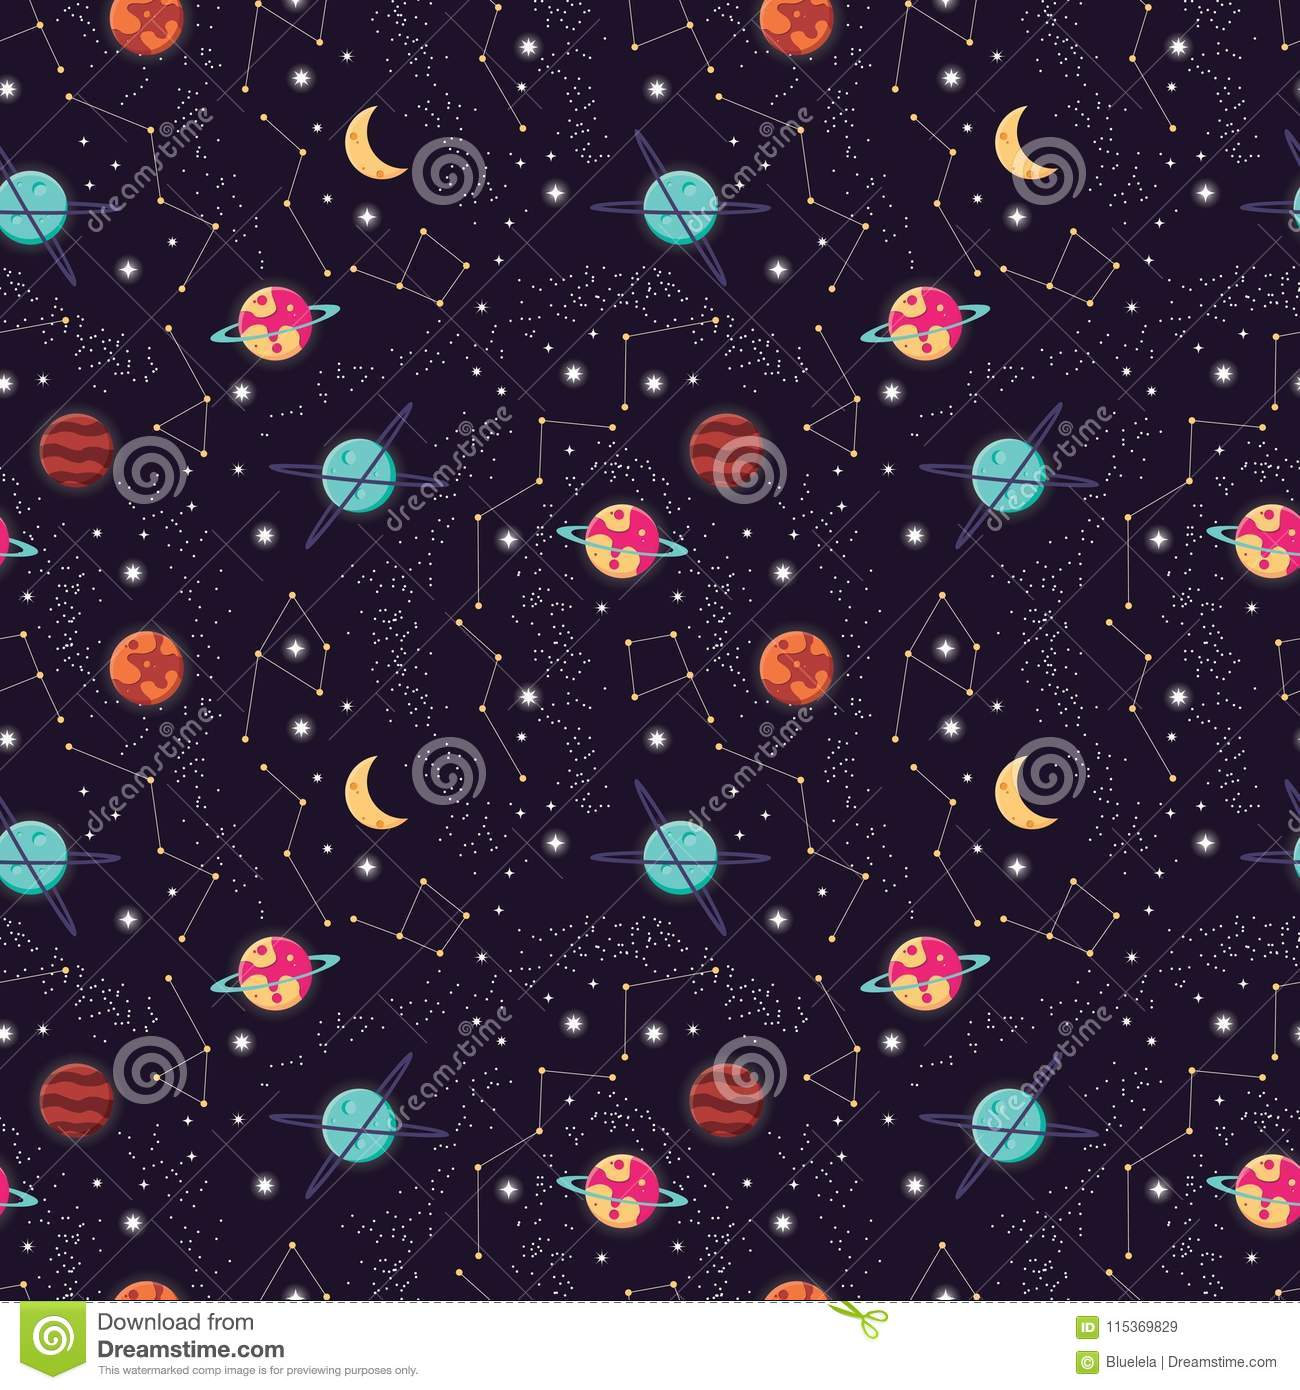 Universe with planets and stars seamless pattern, cosmos starry night sky